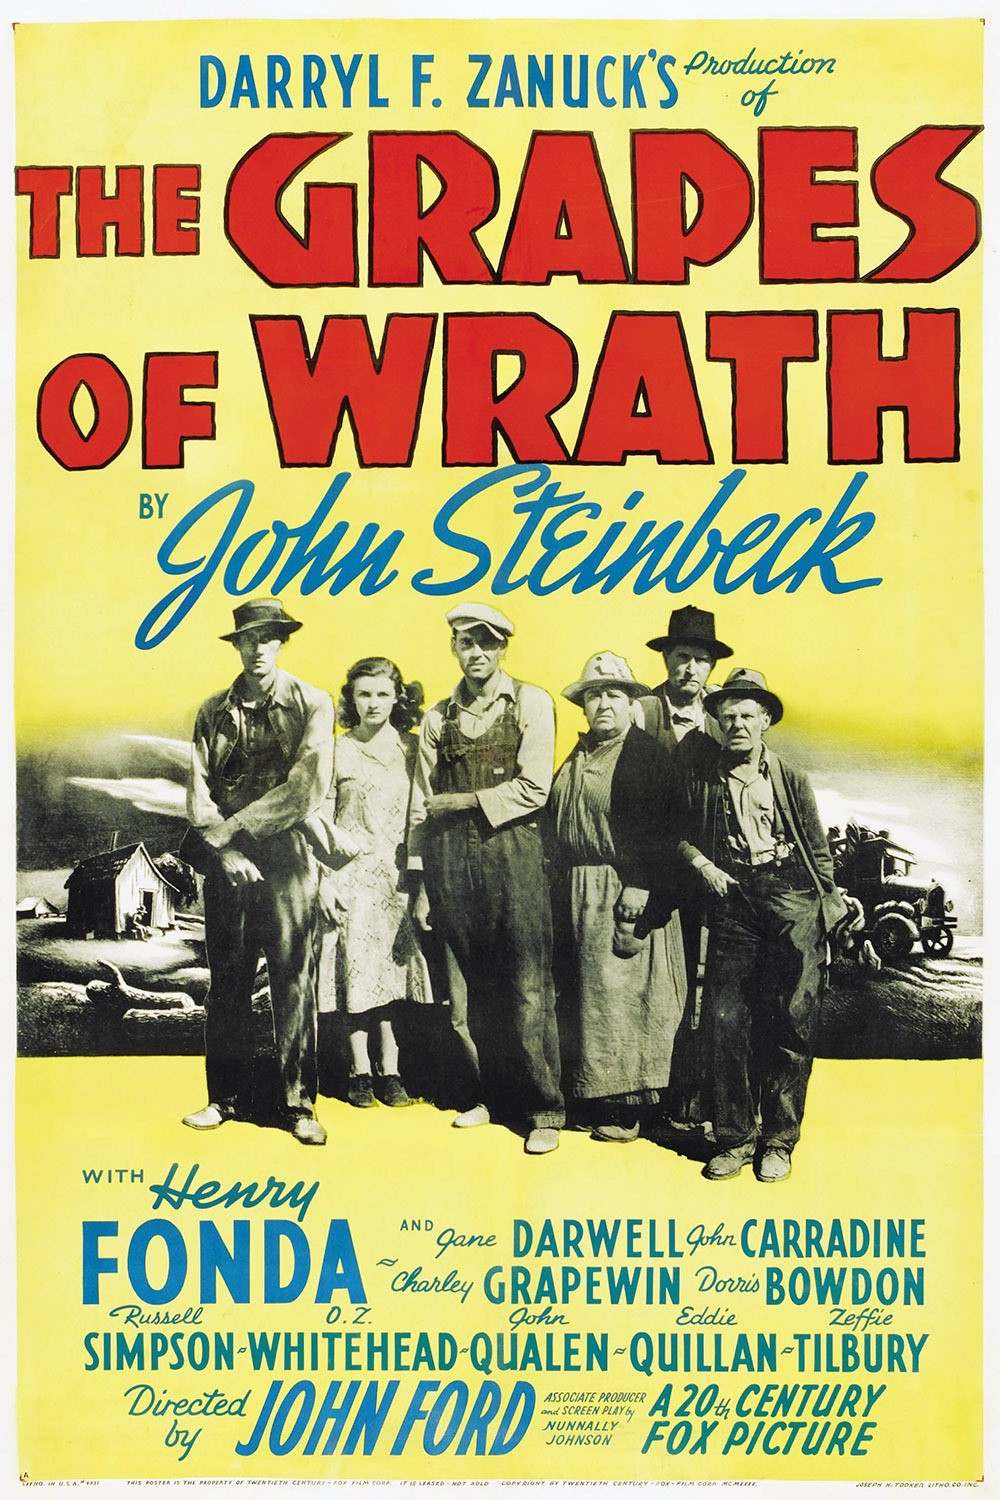 tumblr oa3hzbFYGT1qzdglao1 1280 The Grapes of Wrath vintage The Grapes of Wrath movie poster